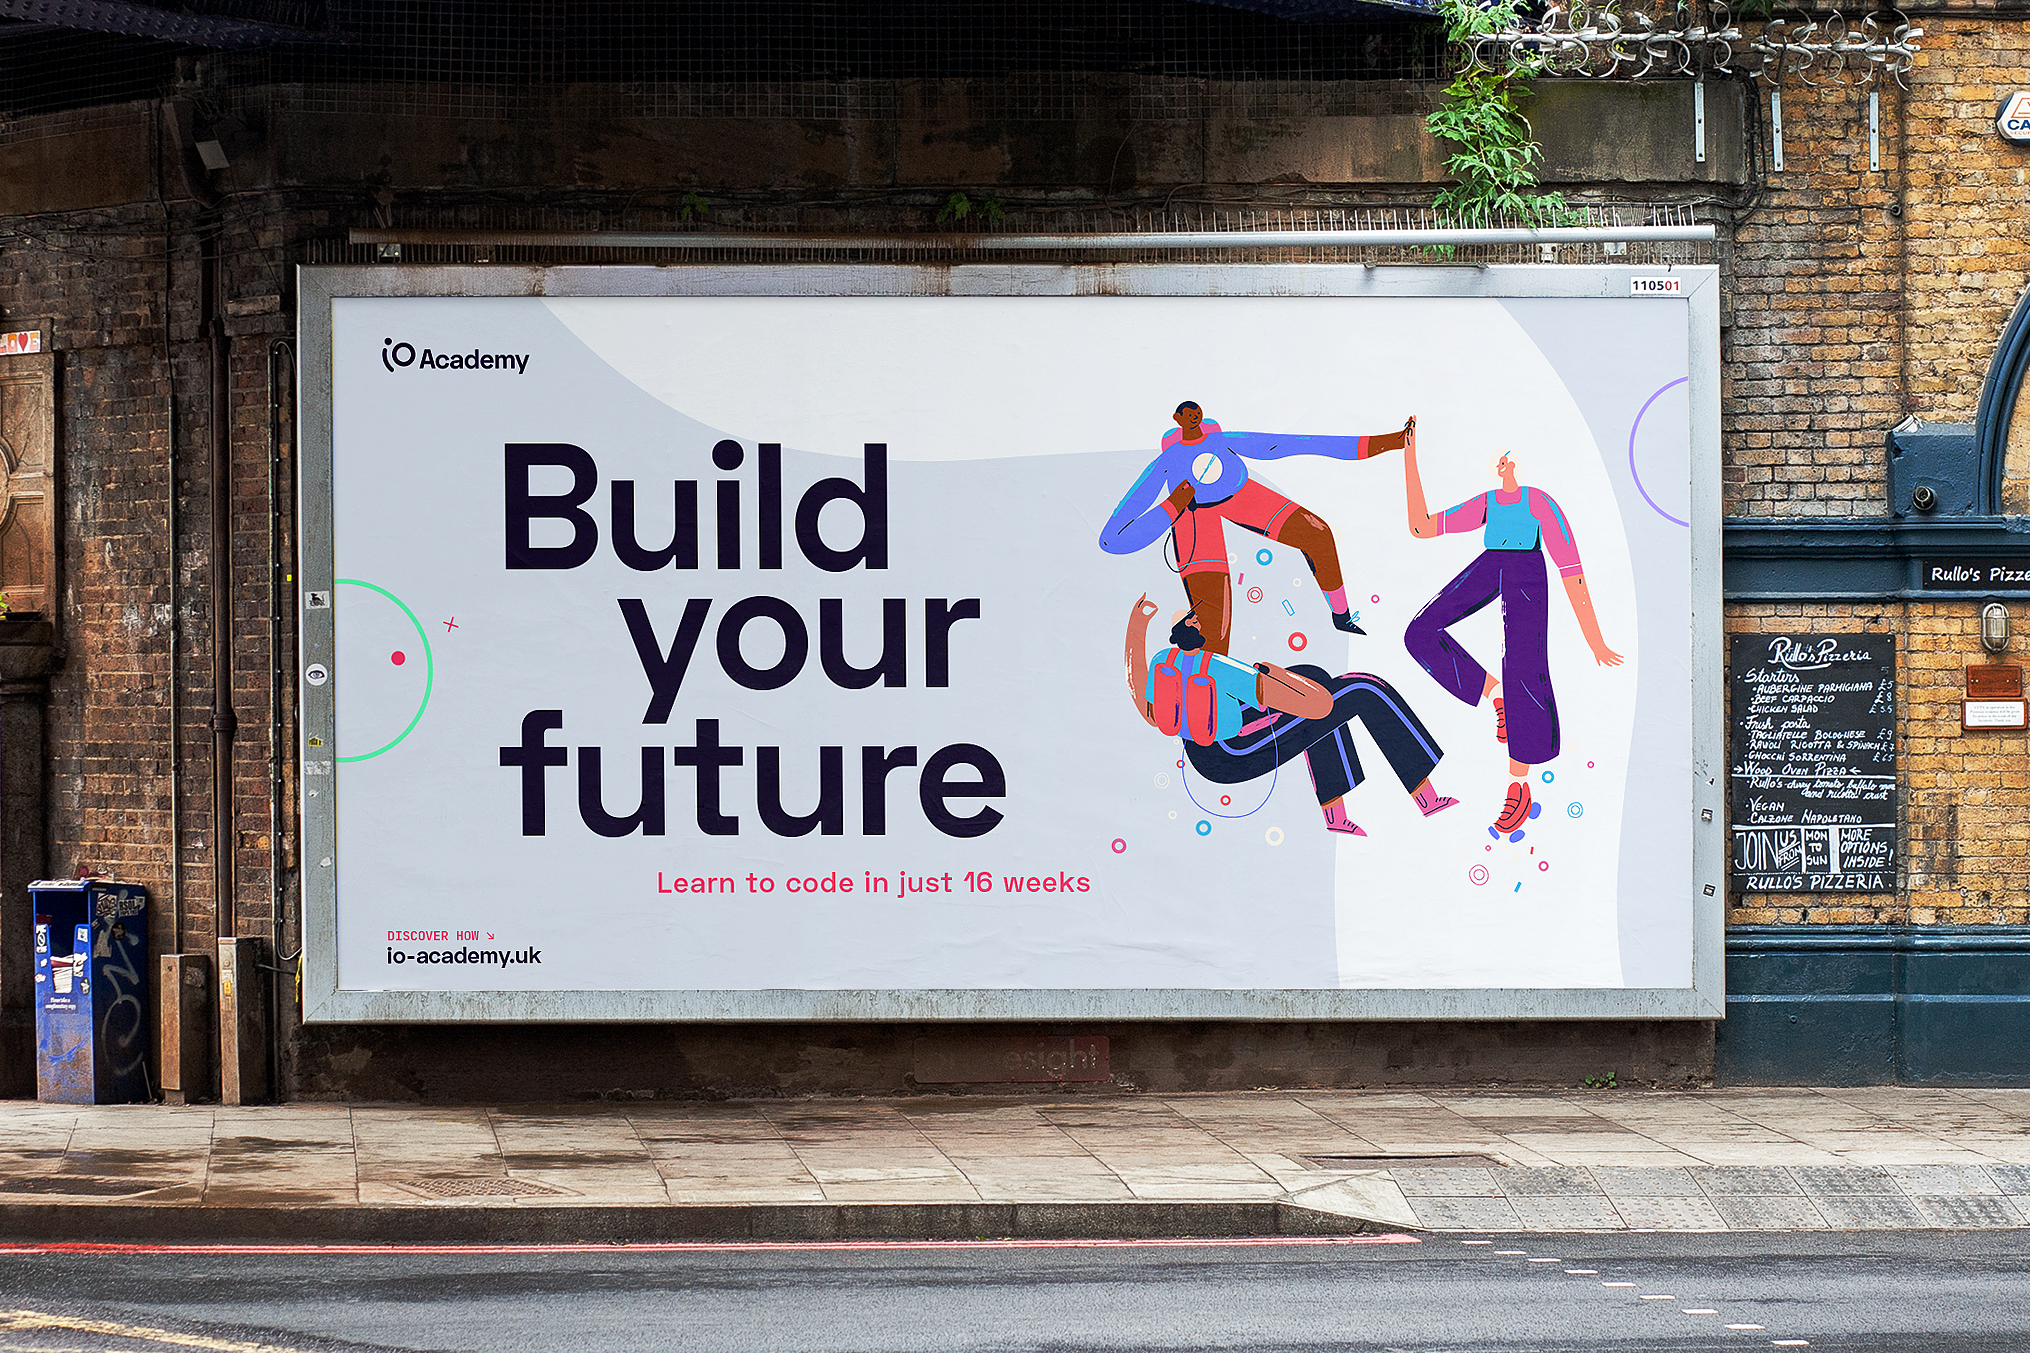 Billboard poster that says Build Your Future with illustration of colourful characters holding hands in a circle